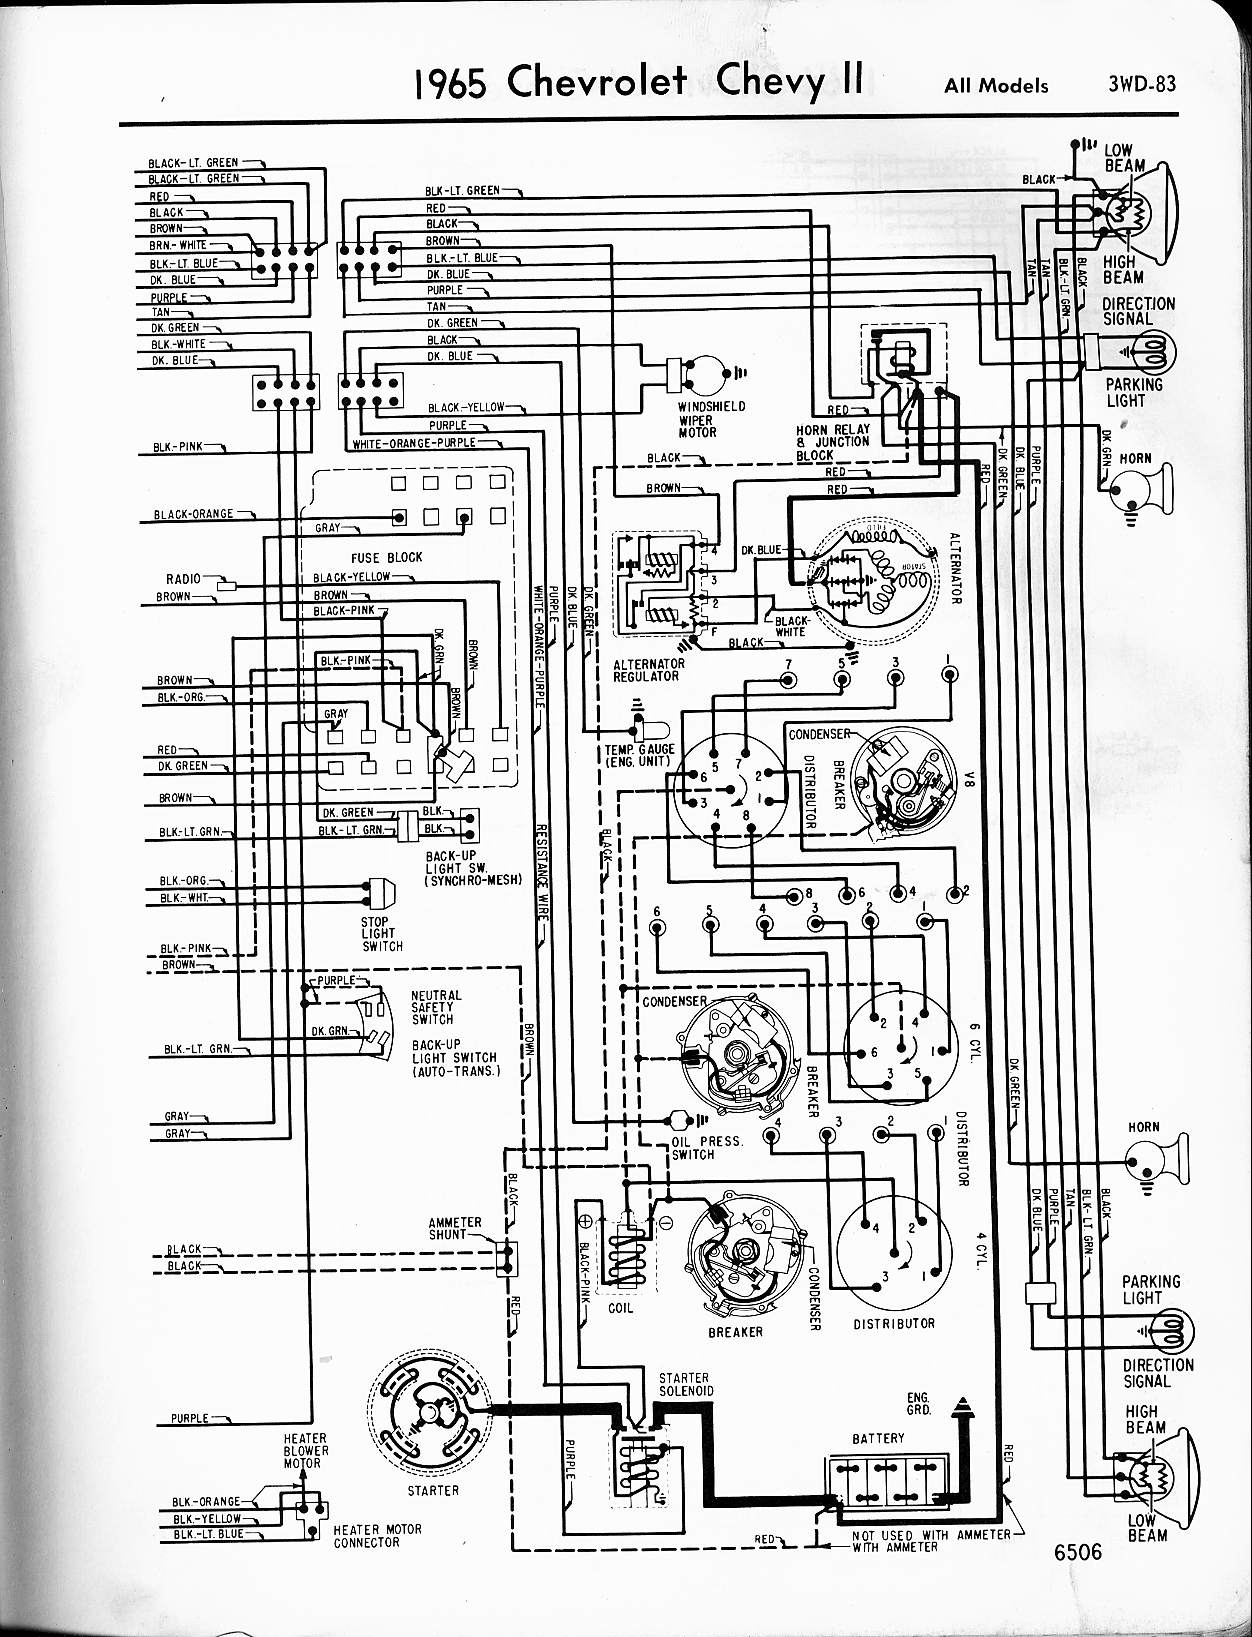 1971 Mustang Headlight Wiring Diagram Car Diagrams Explained 1970 Chevy Rh Wizard Com Ignition Switch